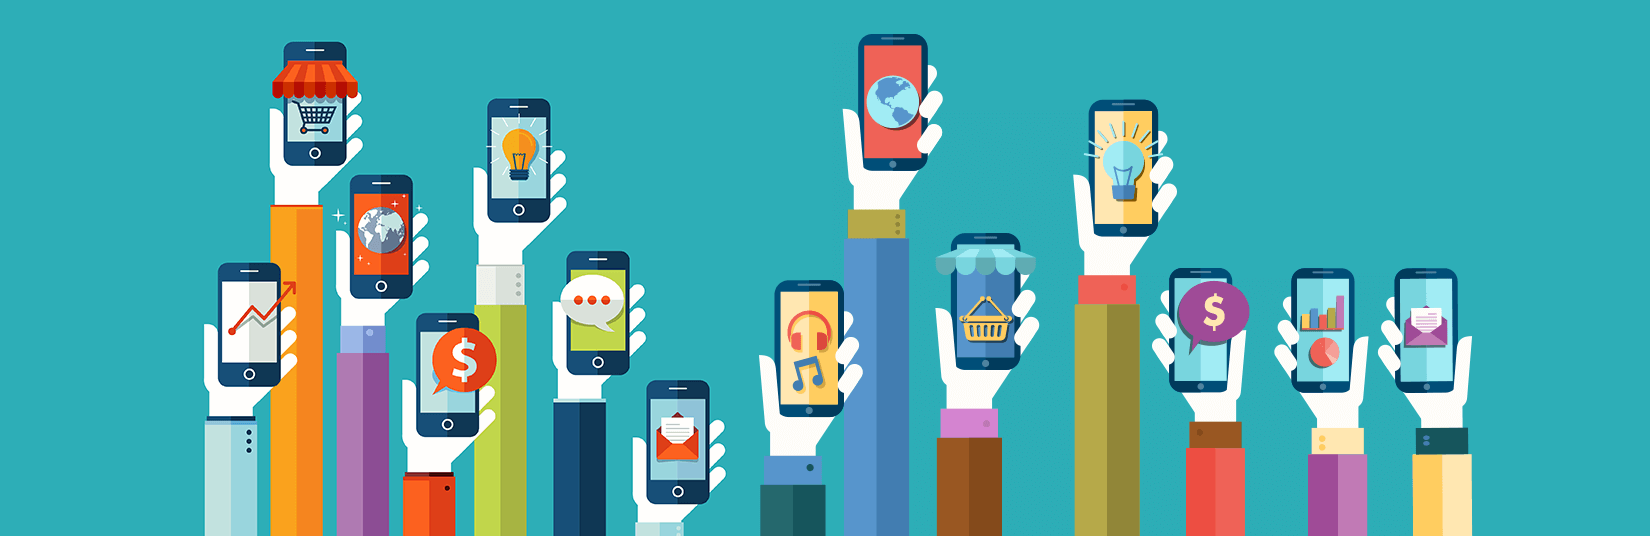 Mobile Apps can Increase the ROI of your Business